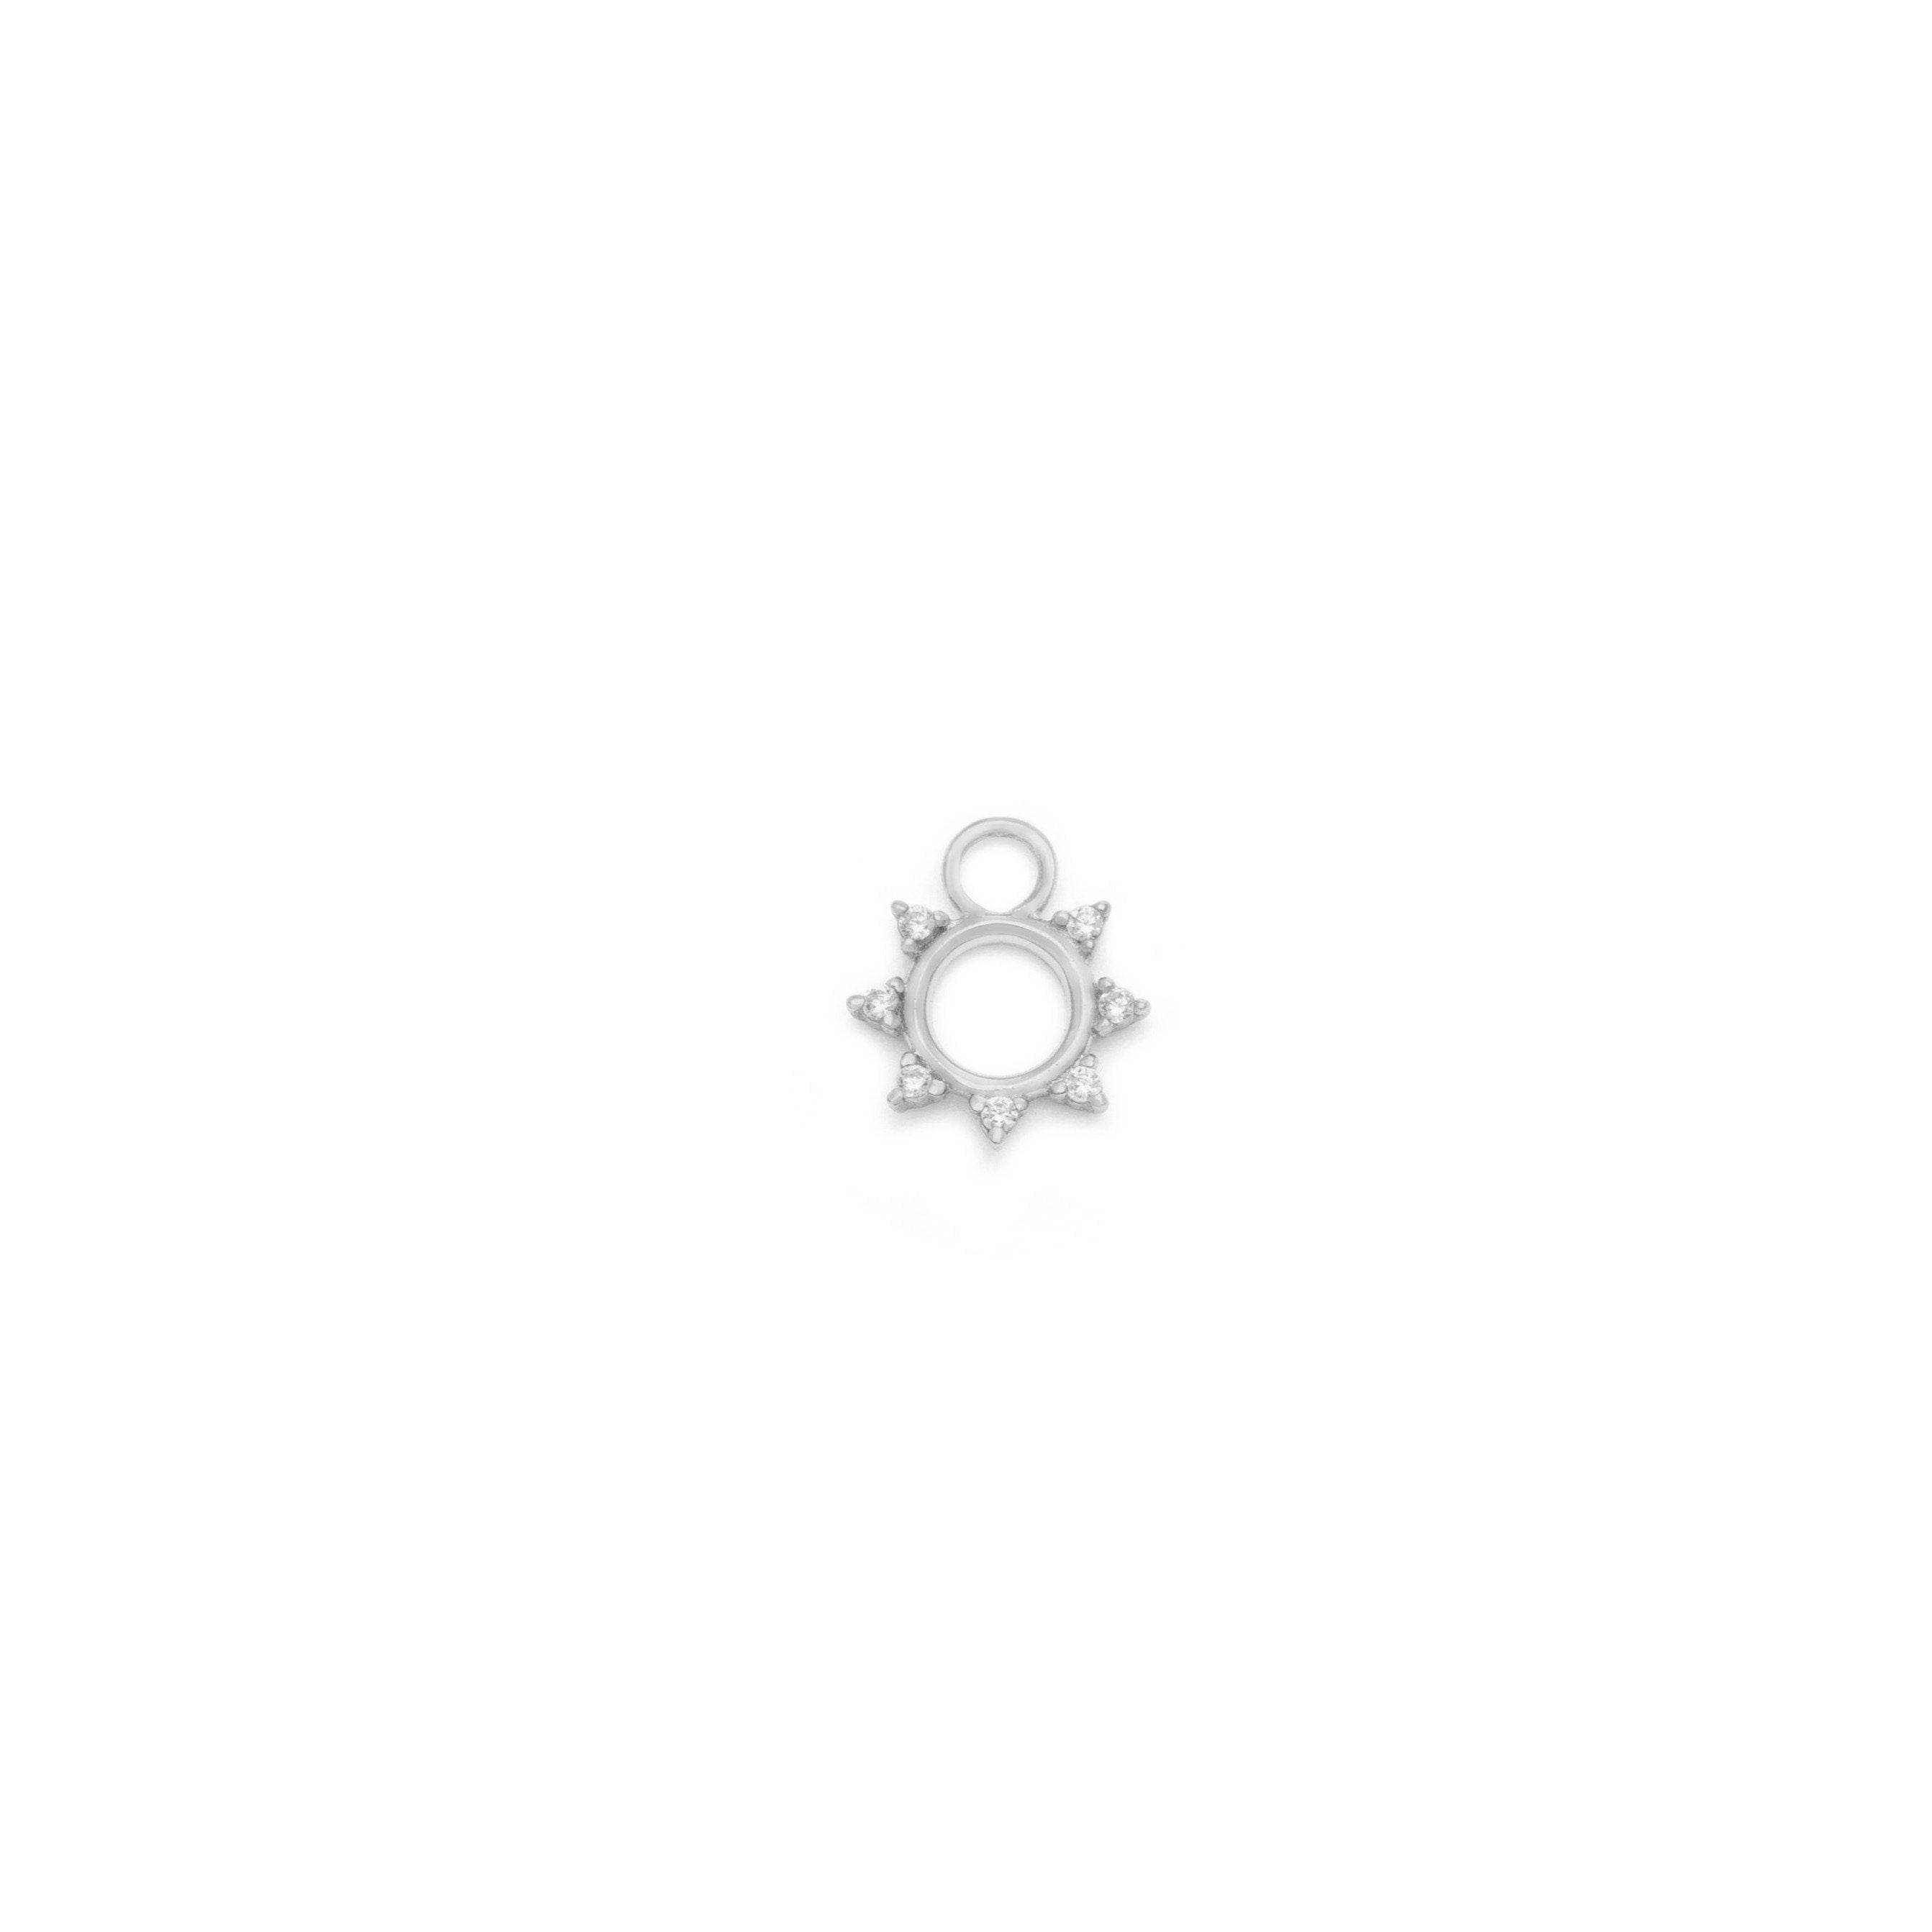 Single Sun Ray Earring Charm - Sterling Silver